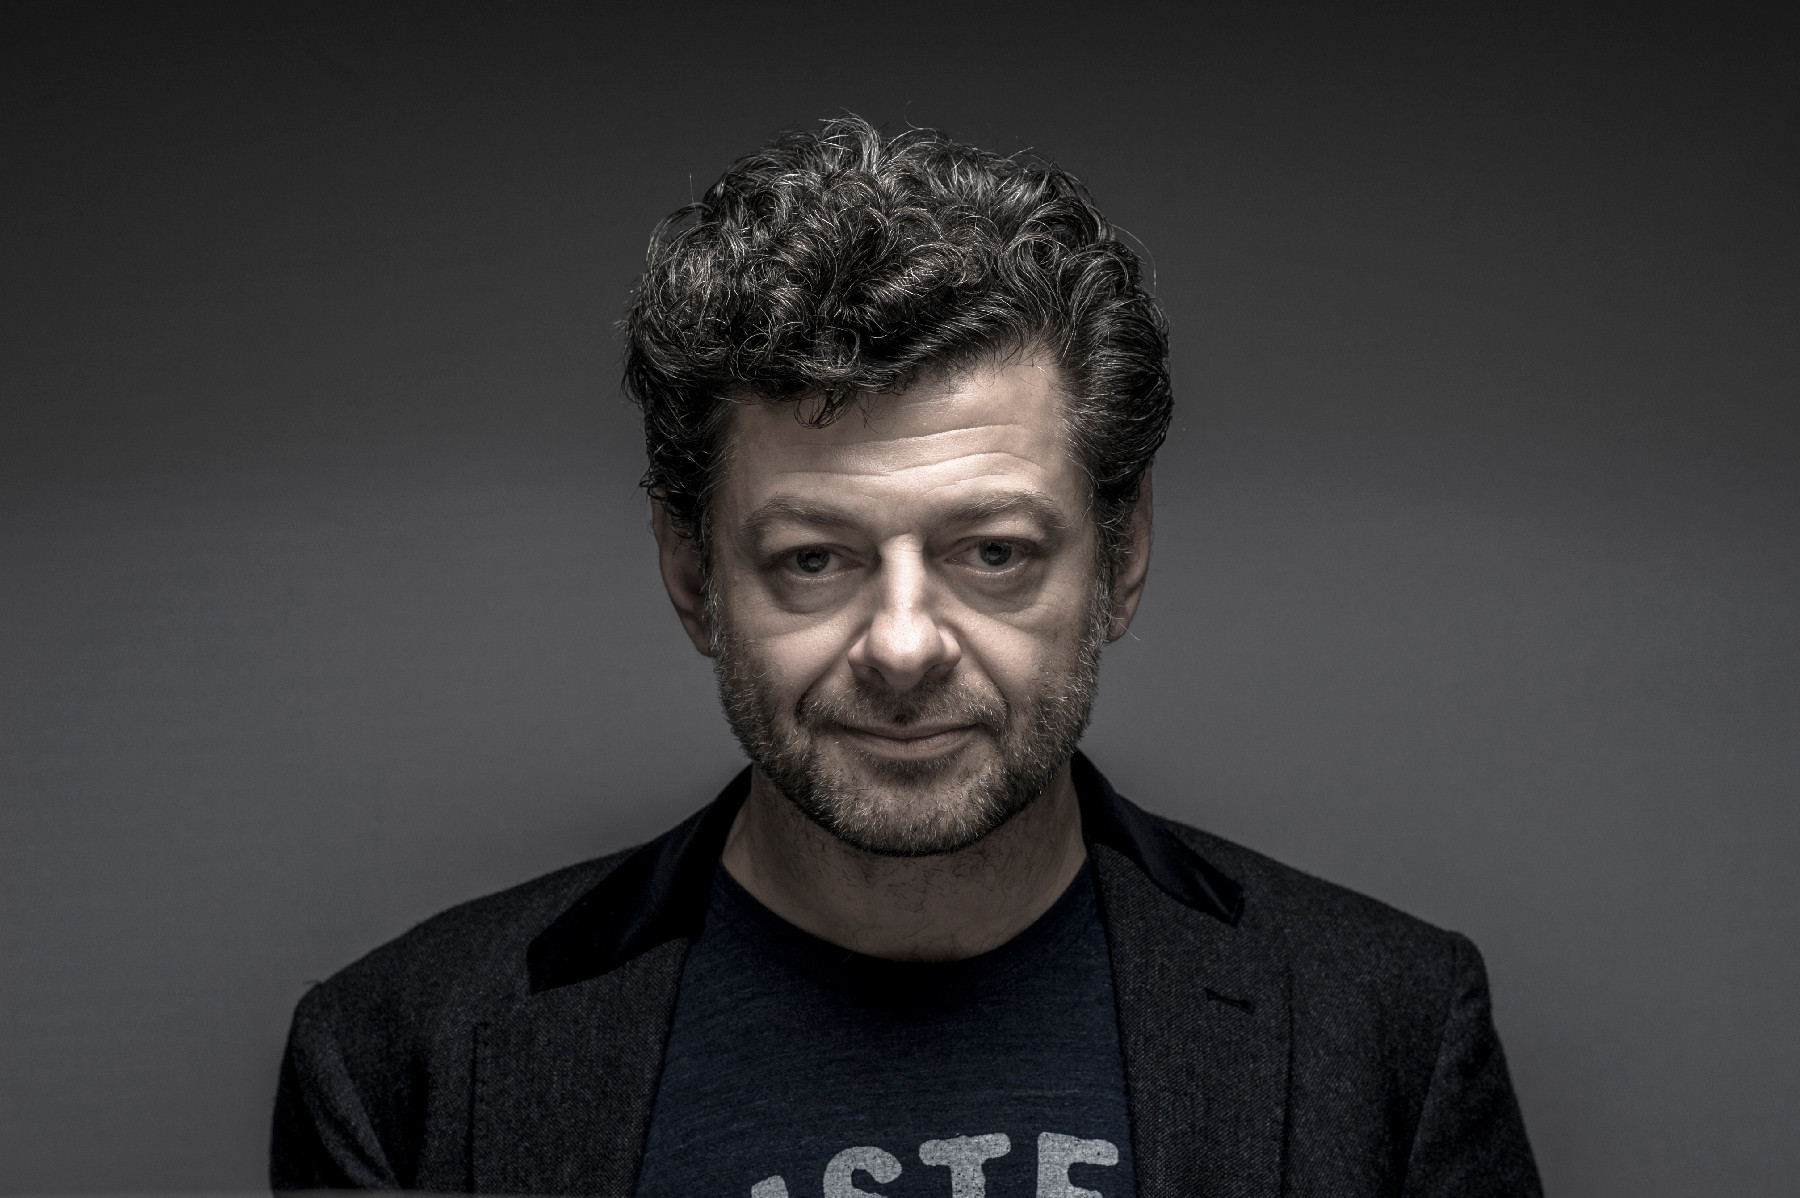 photo Andy Serkis (born 1964)